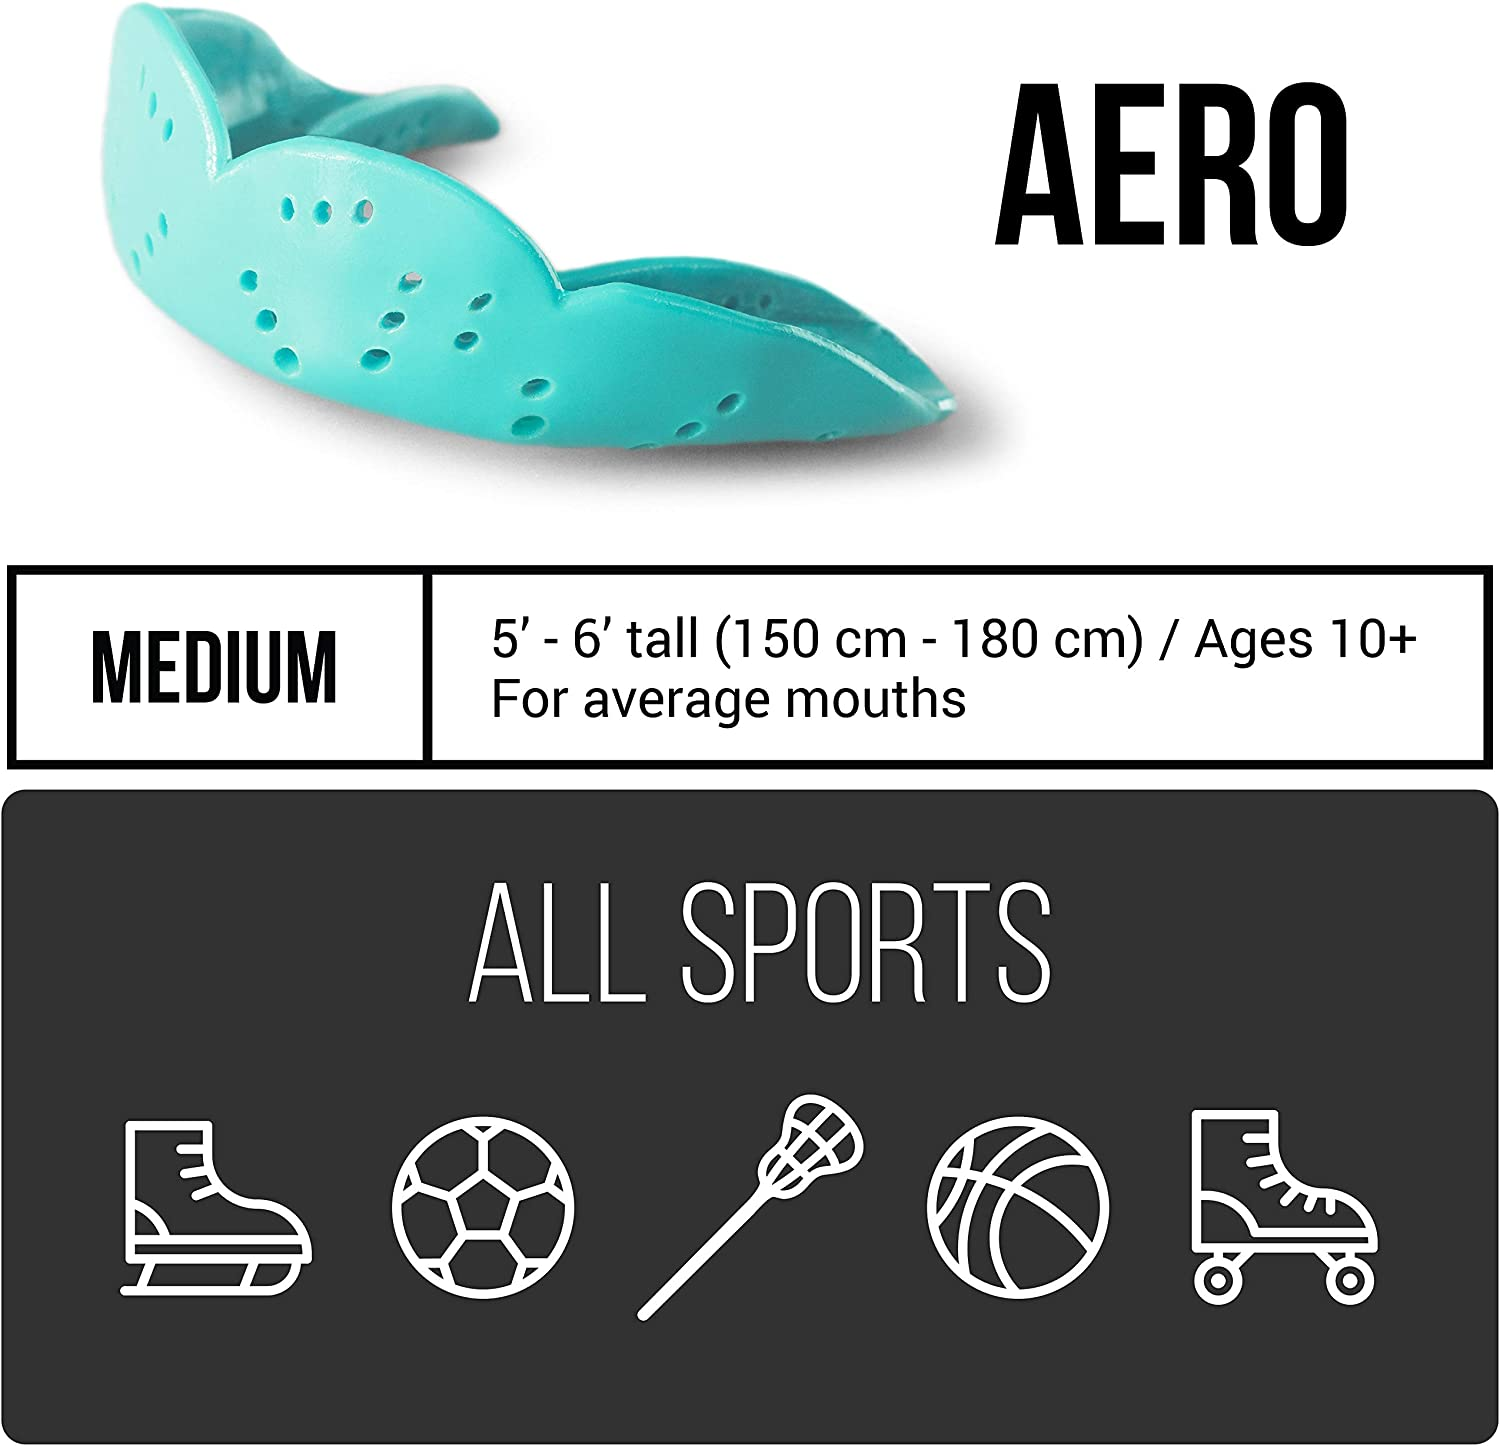 SISU Mouth Guards Aero 1.6mm Custom Fit Sports Mouthguard for Youth/Adults, Charcoal Black, Medium : Sports & Outdoors